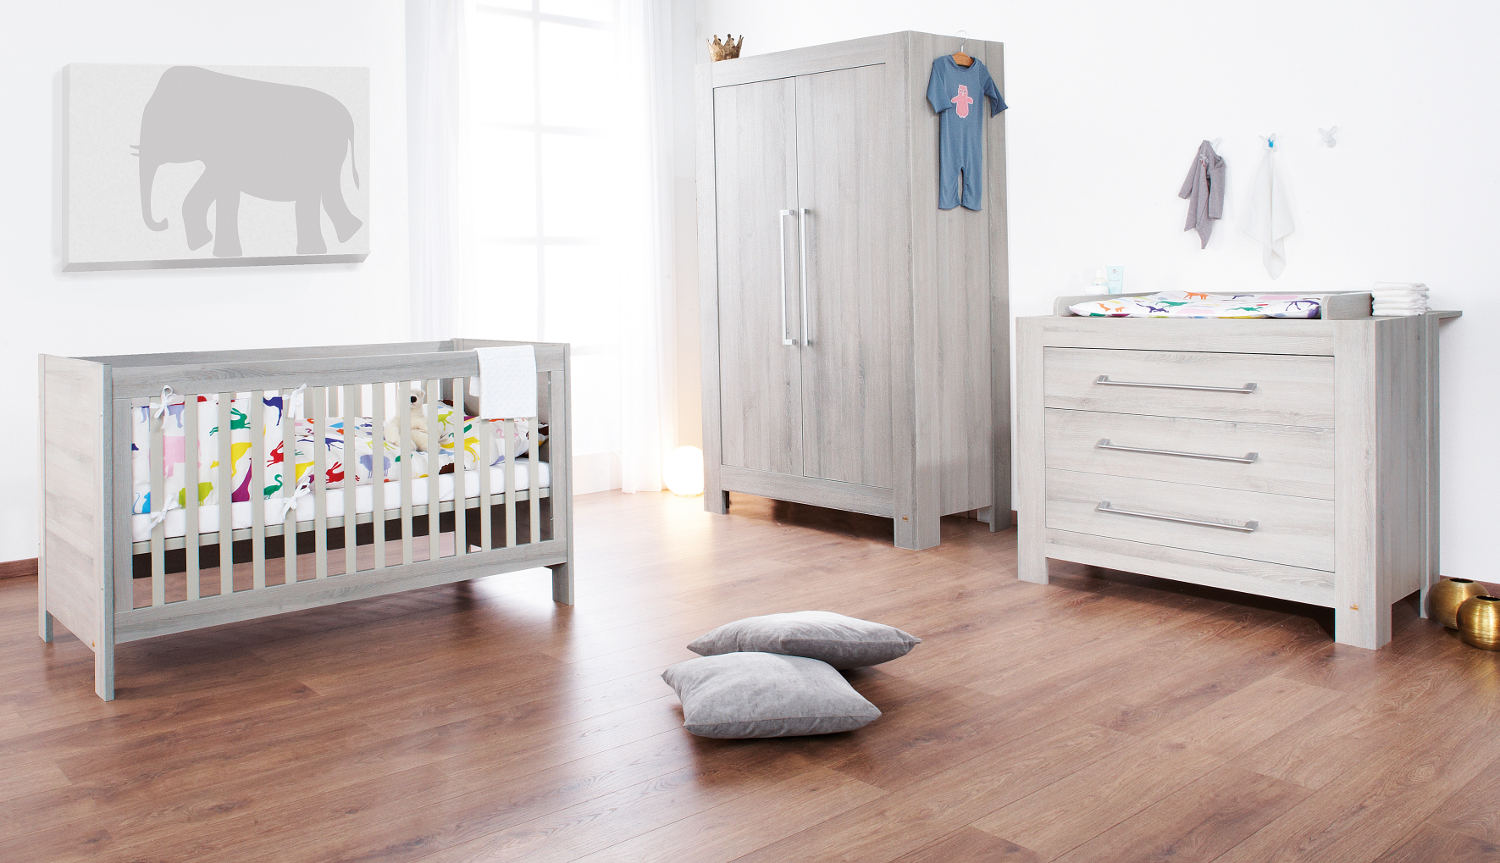 Comment d corer la chambre de b b le monde de l a for Photo de chambre de bebe fille